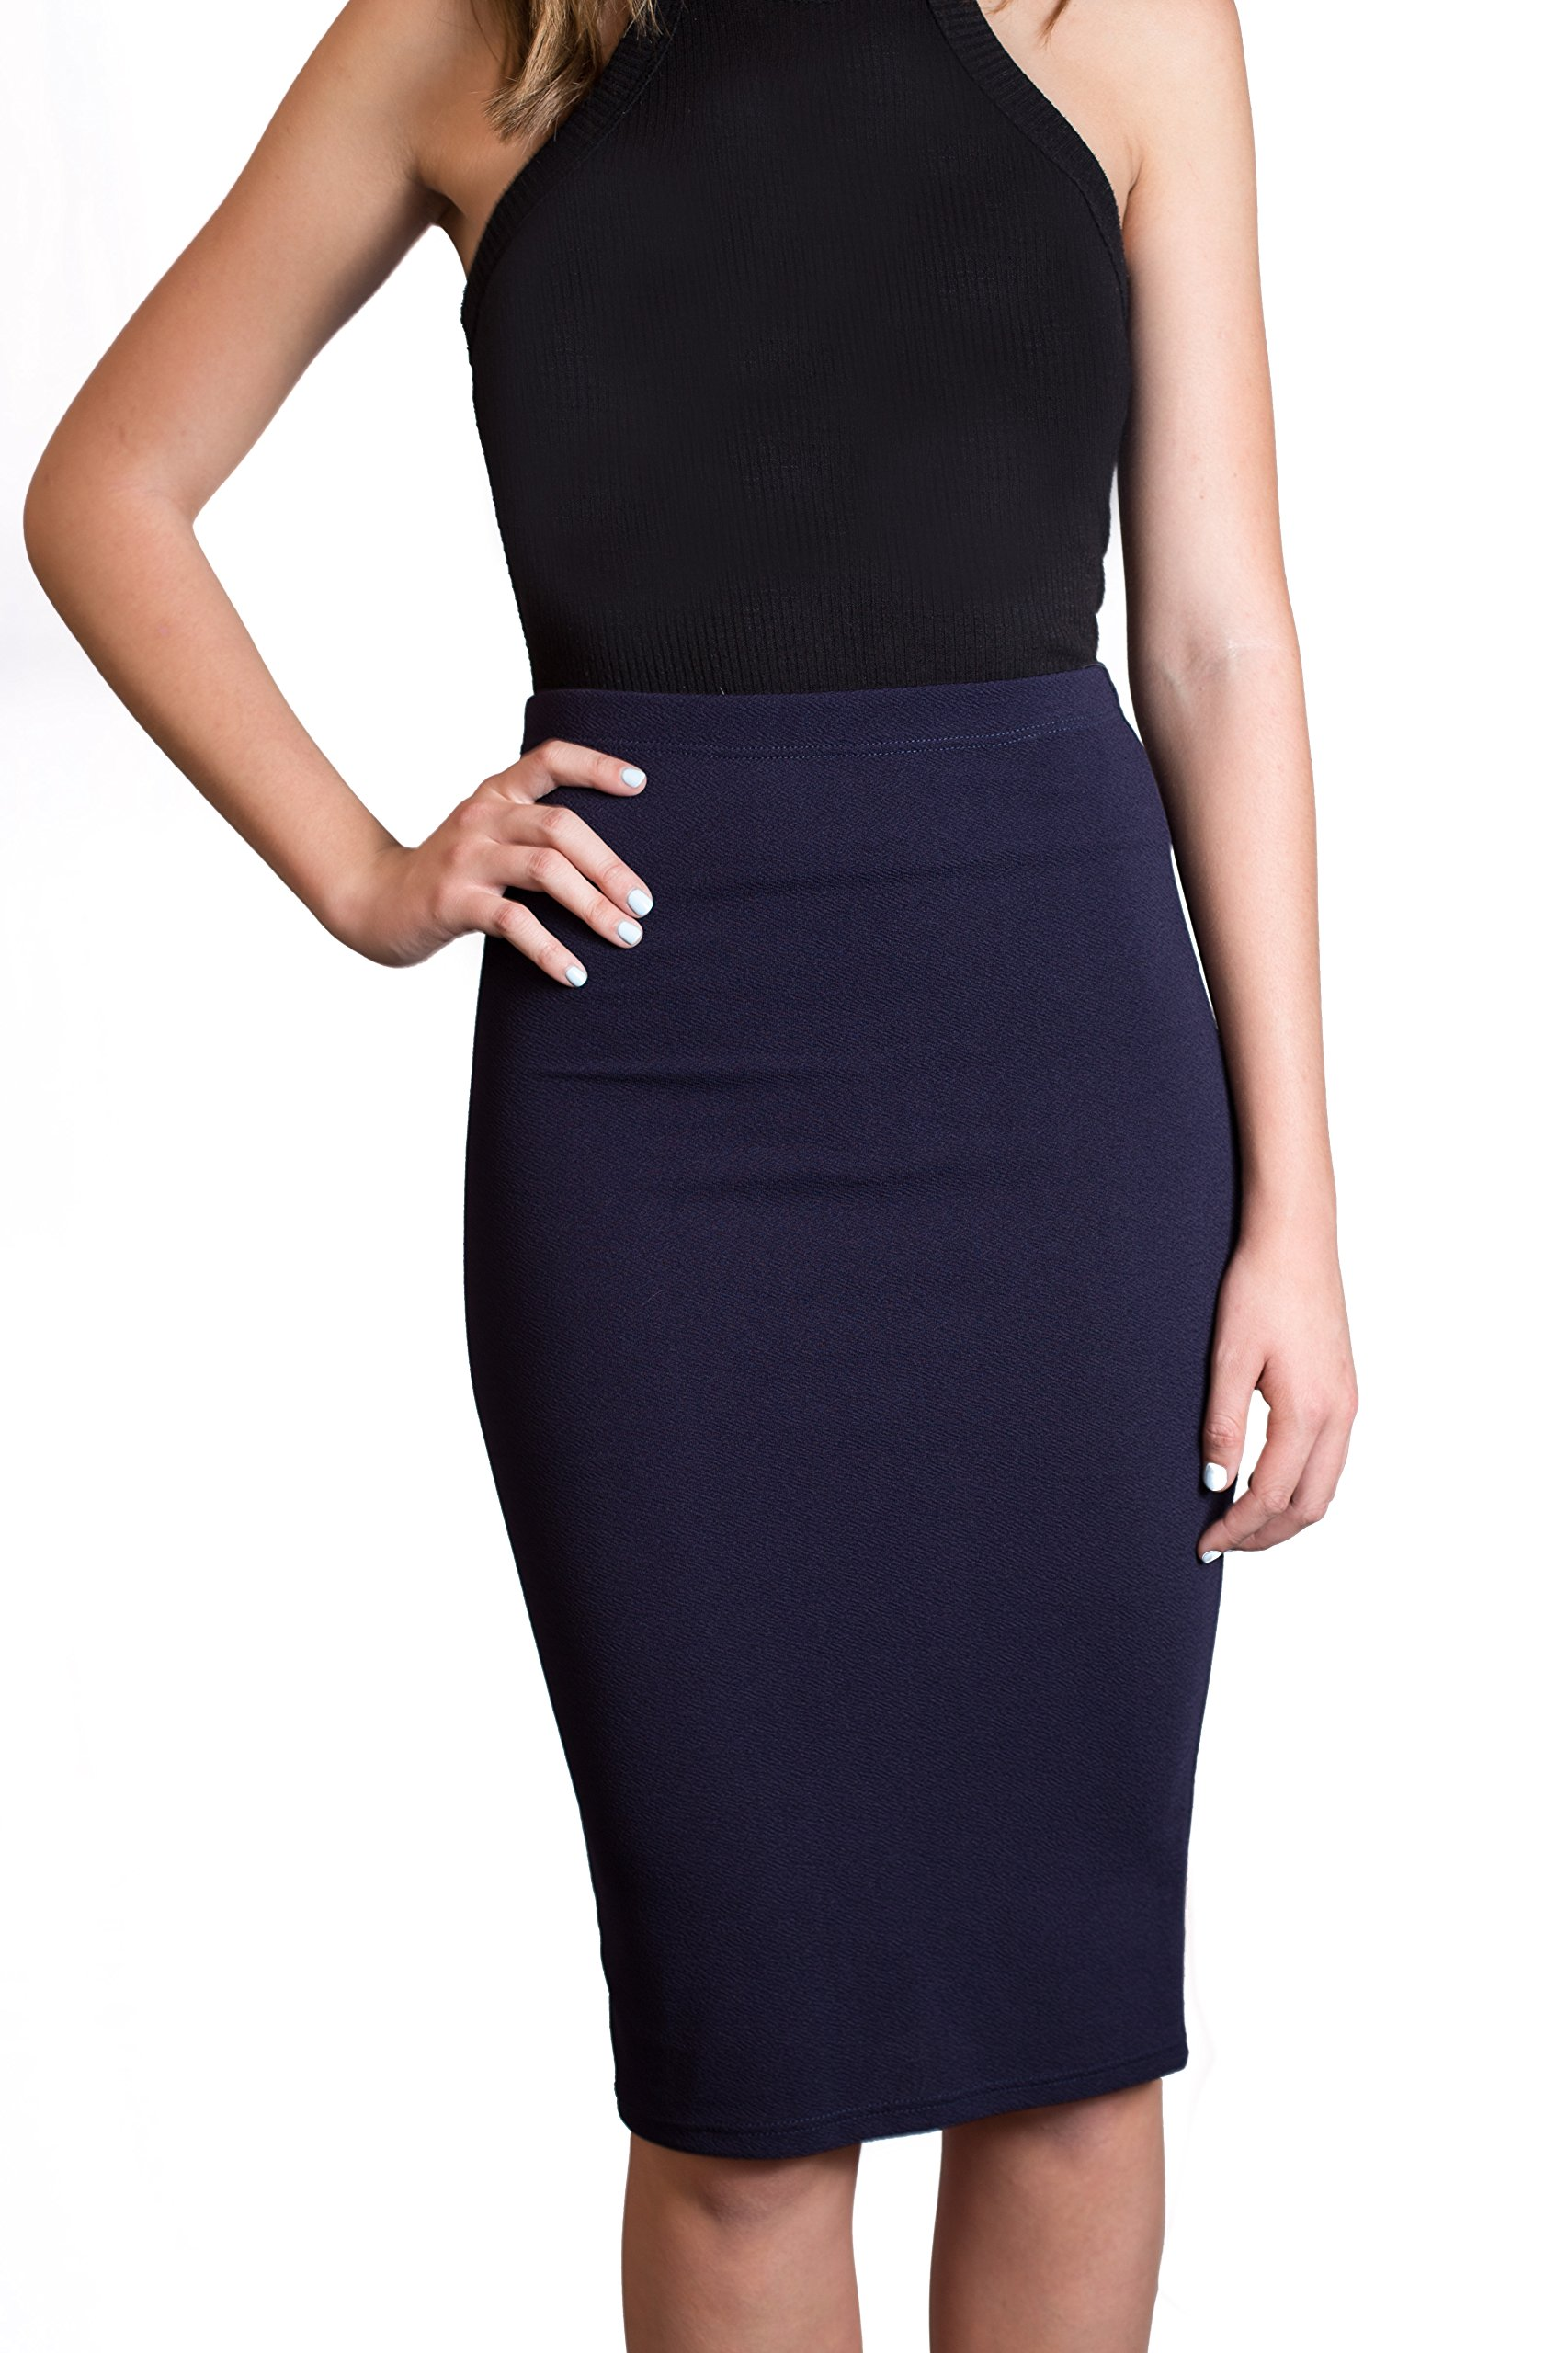 CALDORE USA Womens Pencil Skirts Below The Knee Length Solid Color for Any Casual, Occasion and Office Wear by (Small, Navy)